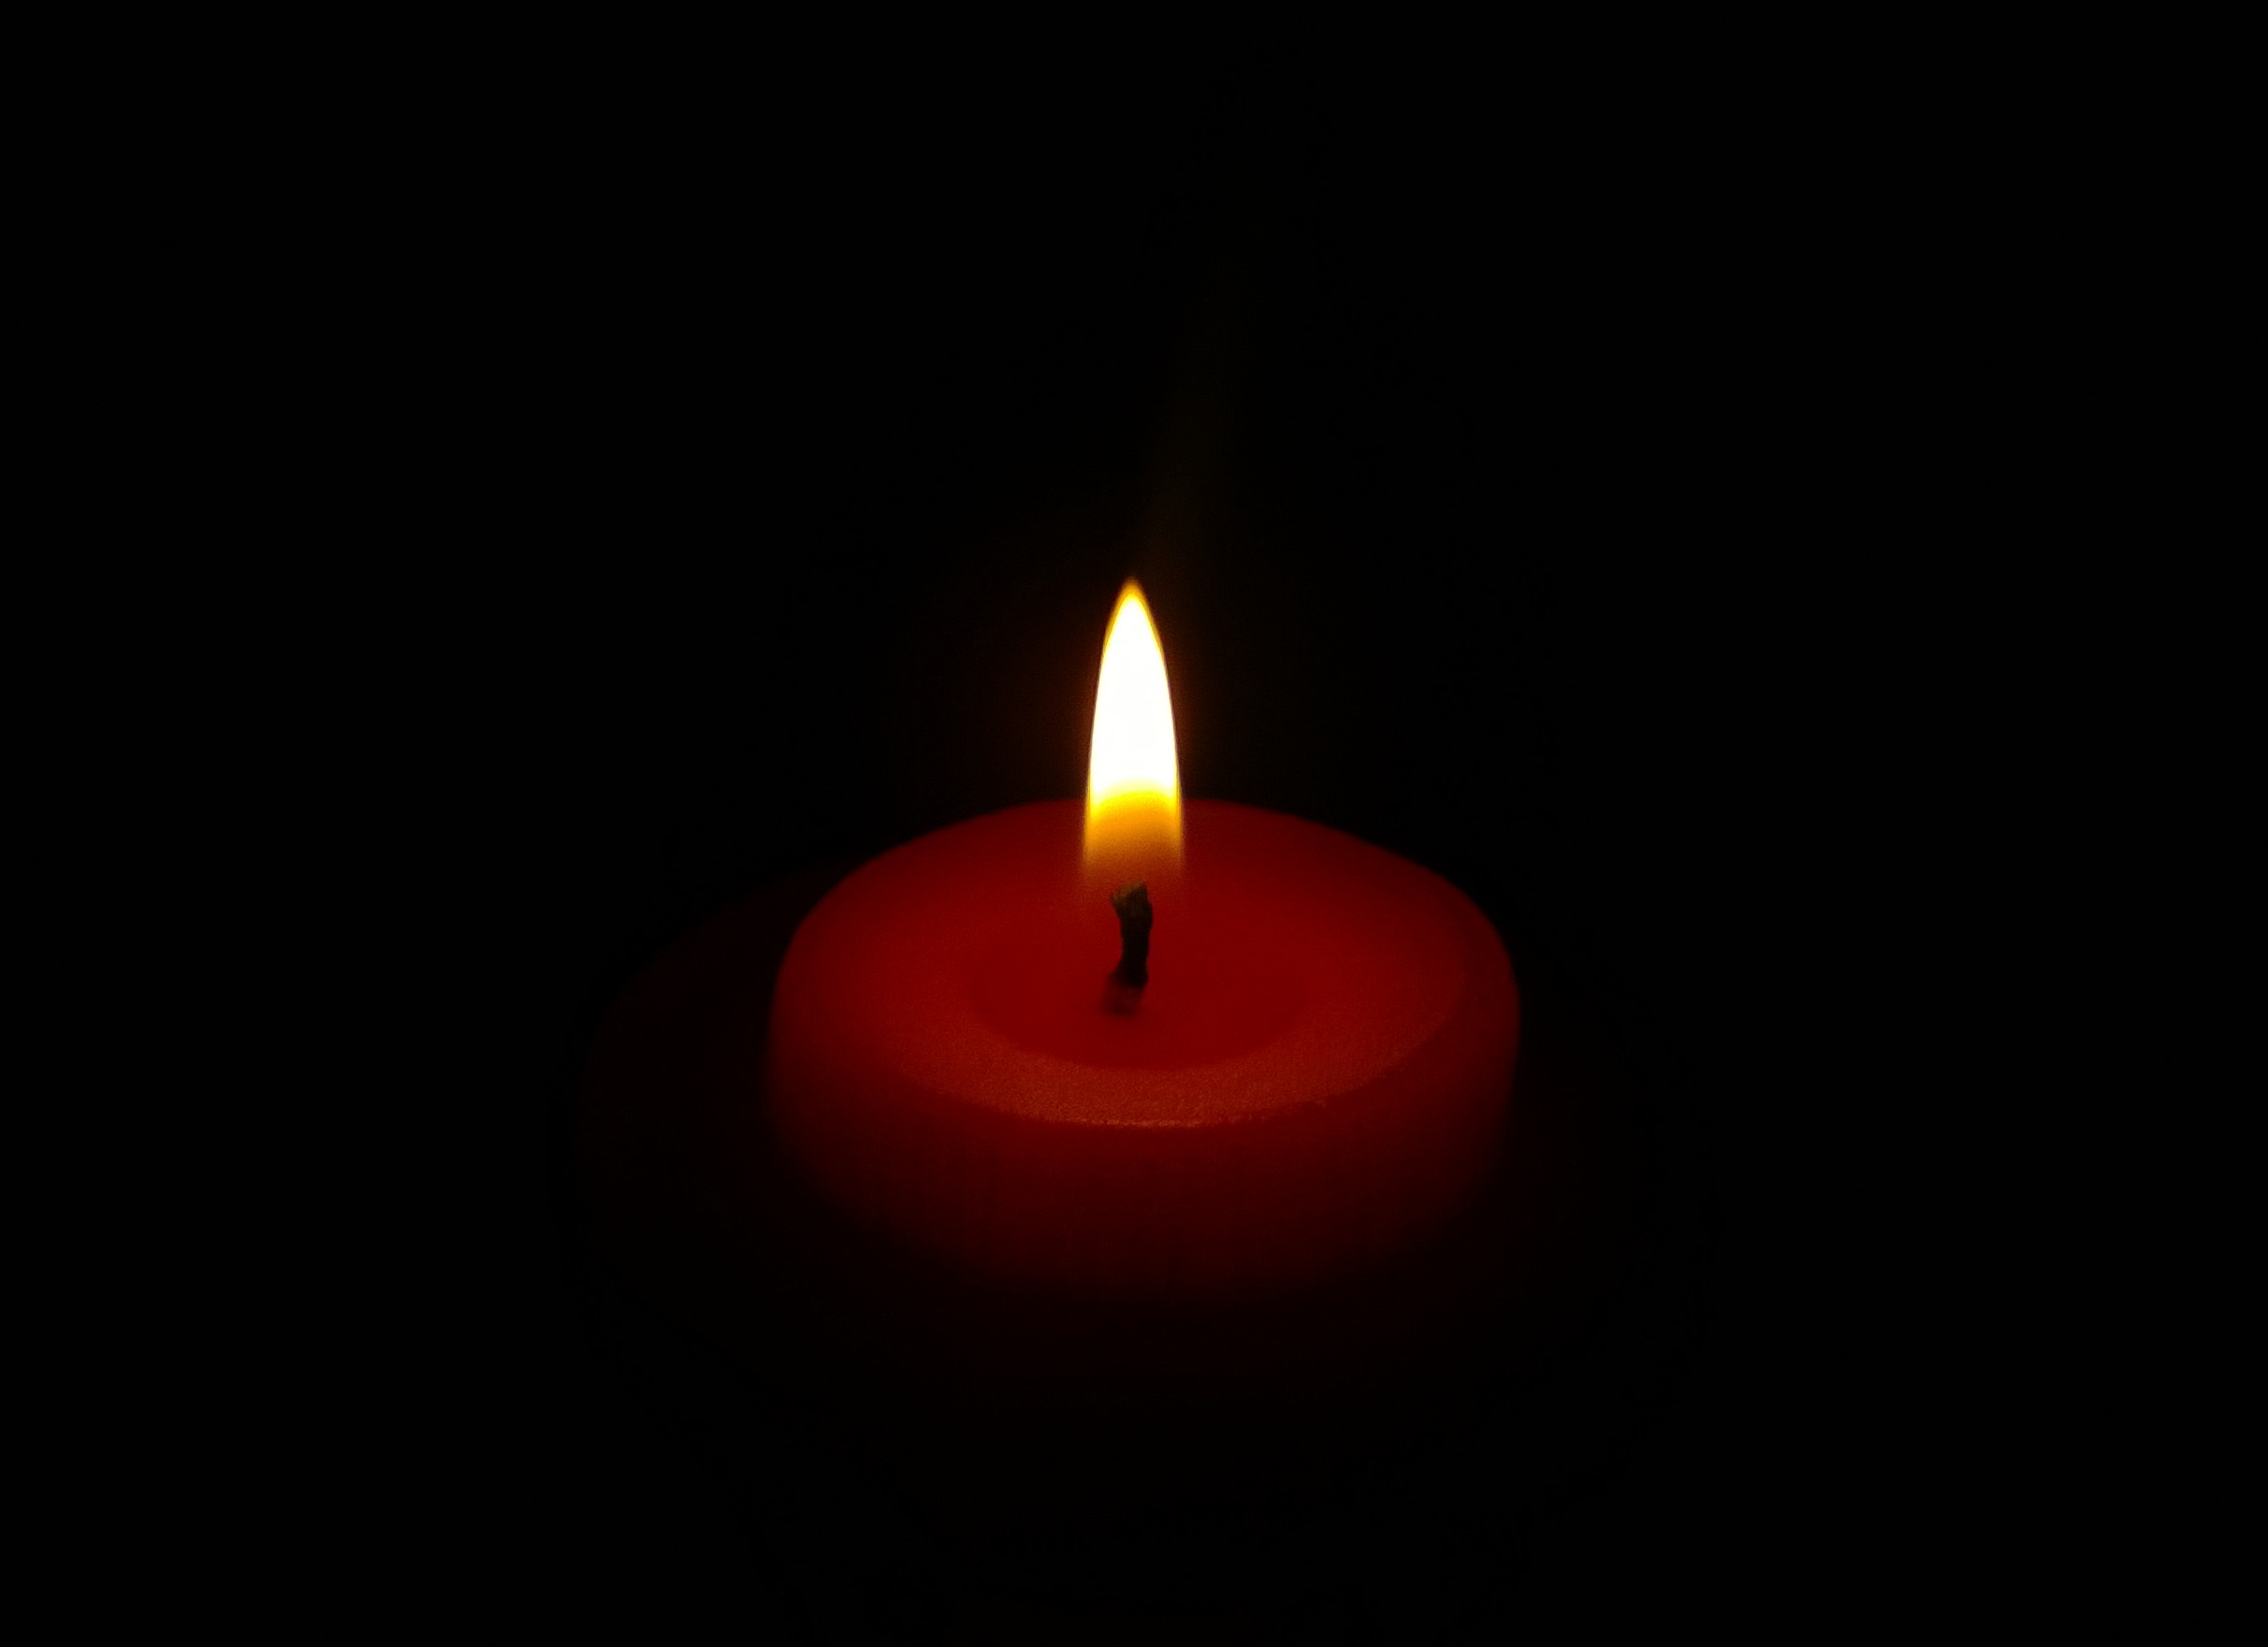 File:Red candle.jpg - Wikimedia Commons